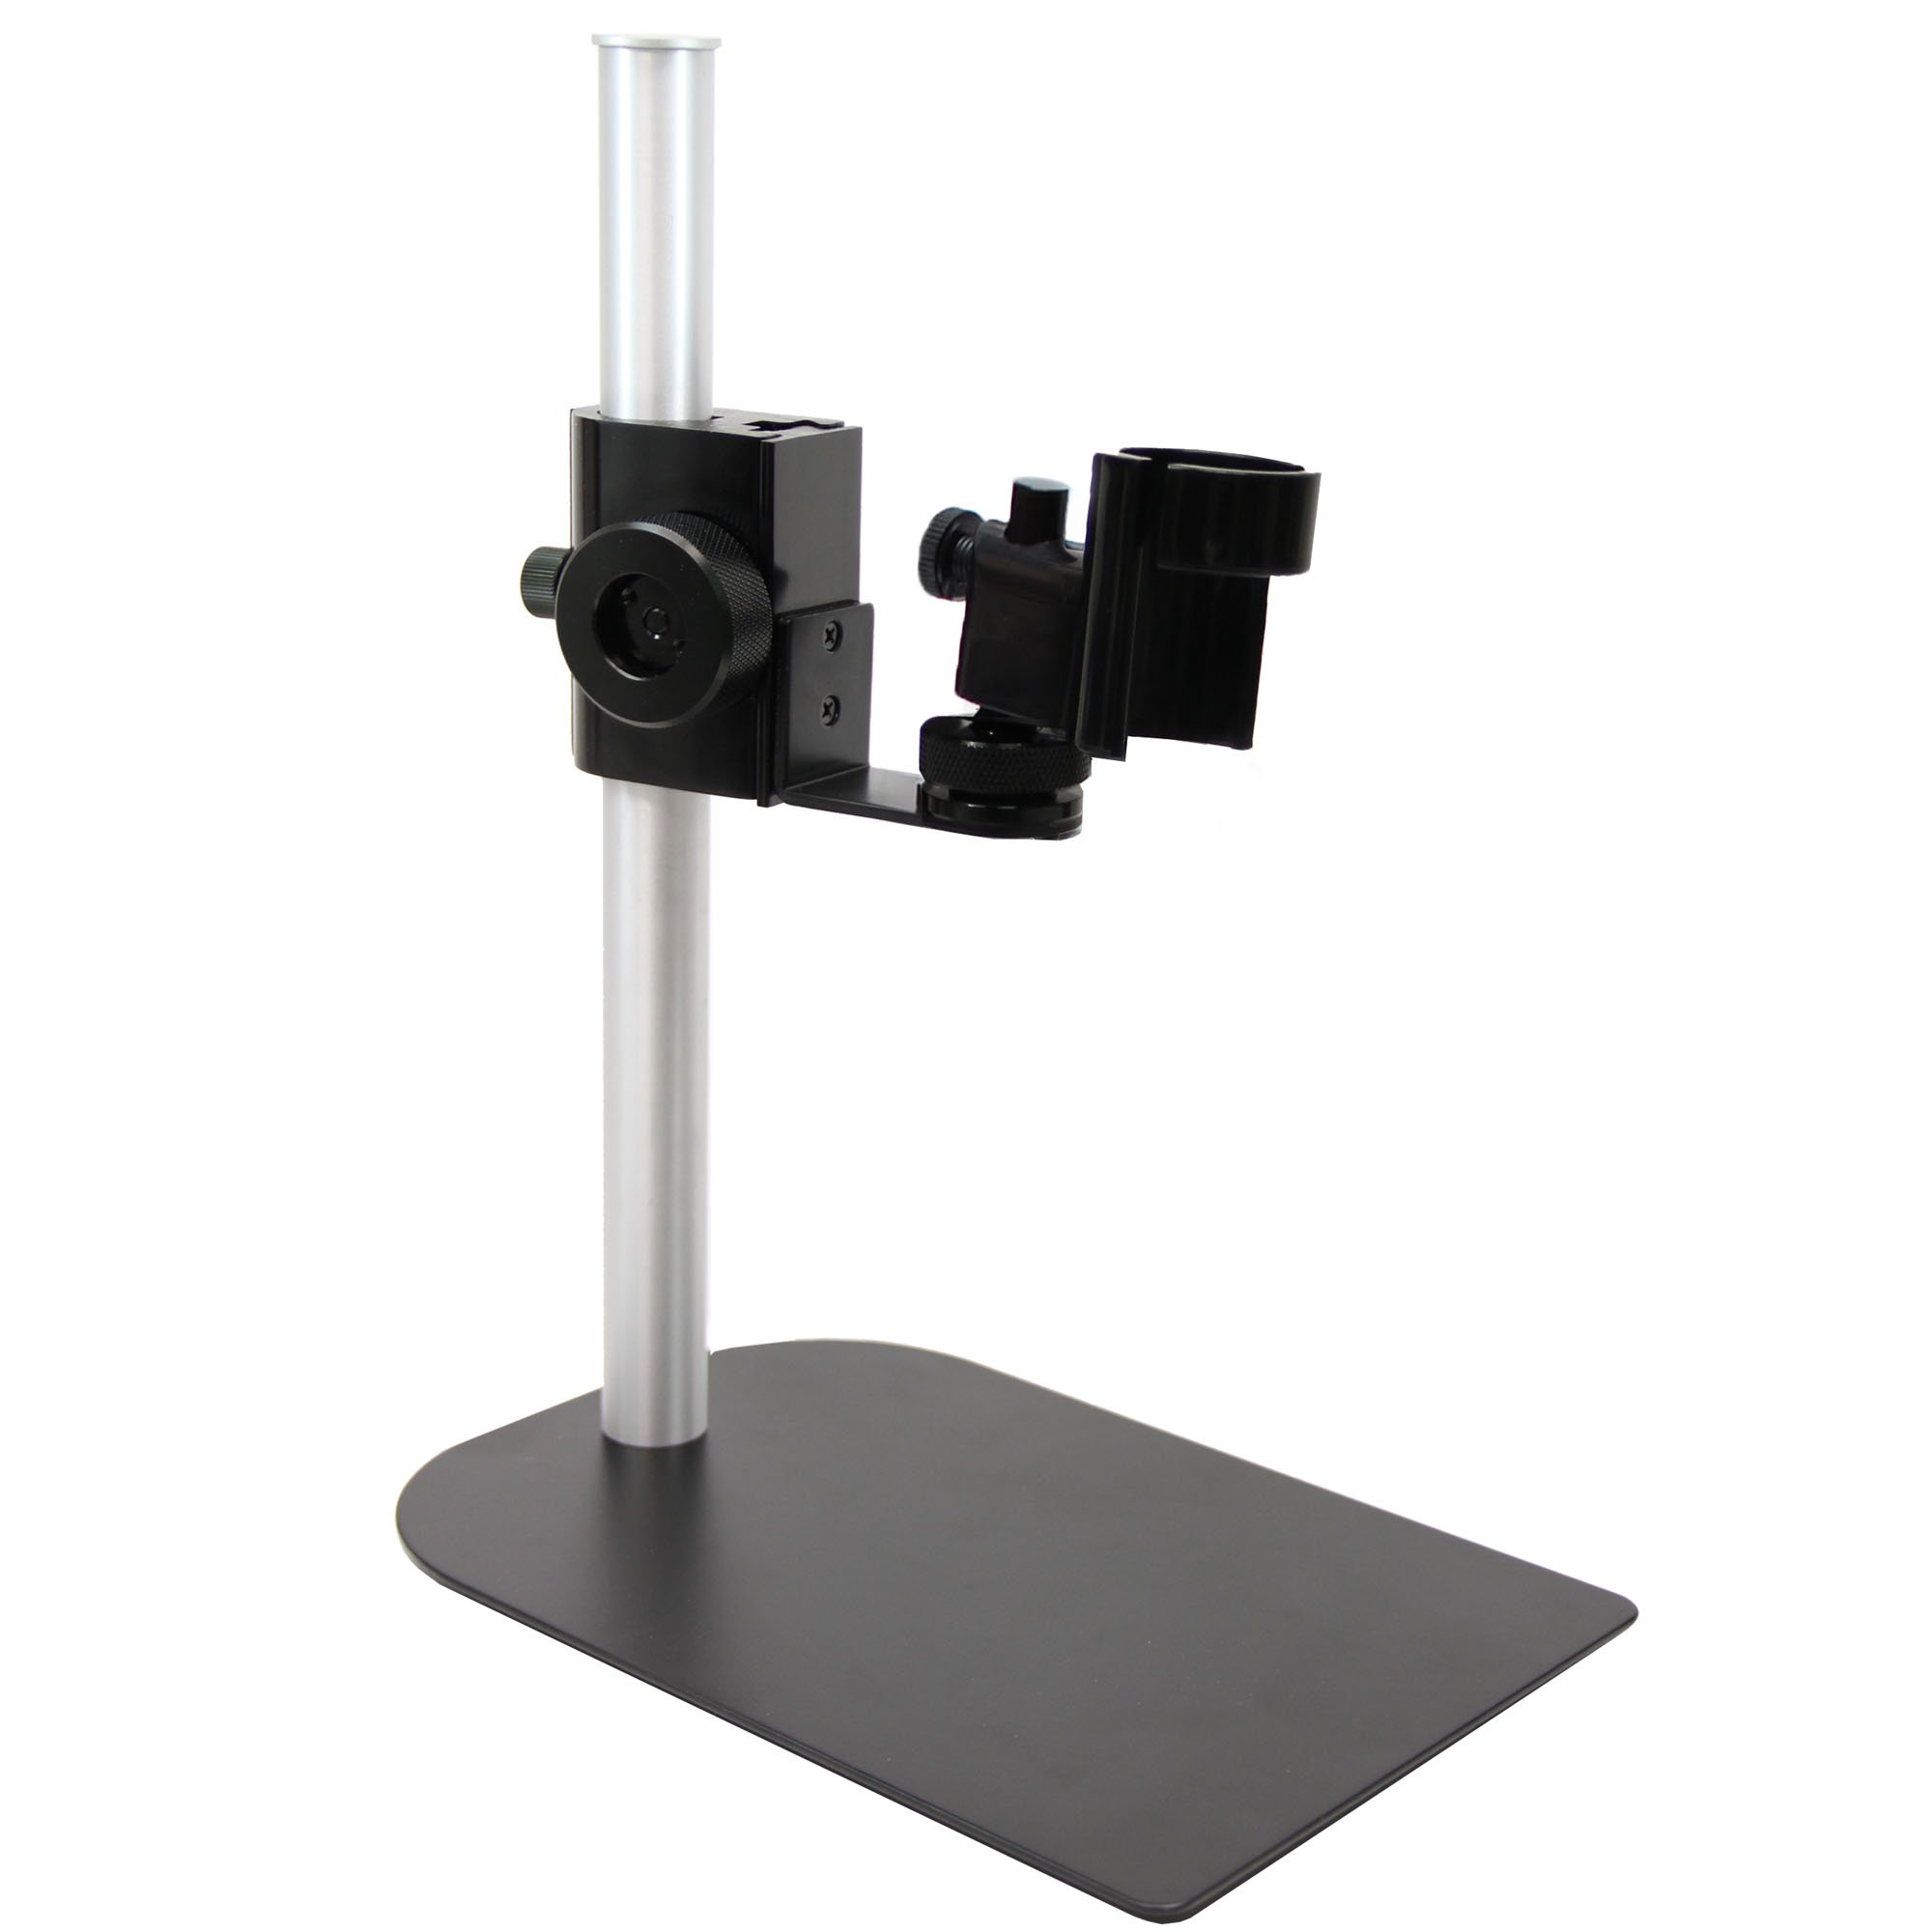 MS35B Rigid Tabletop Stand Designed for Dino-Lite